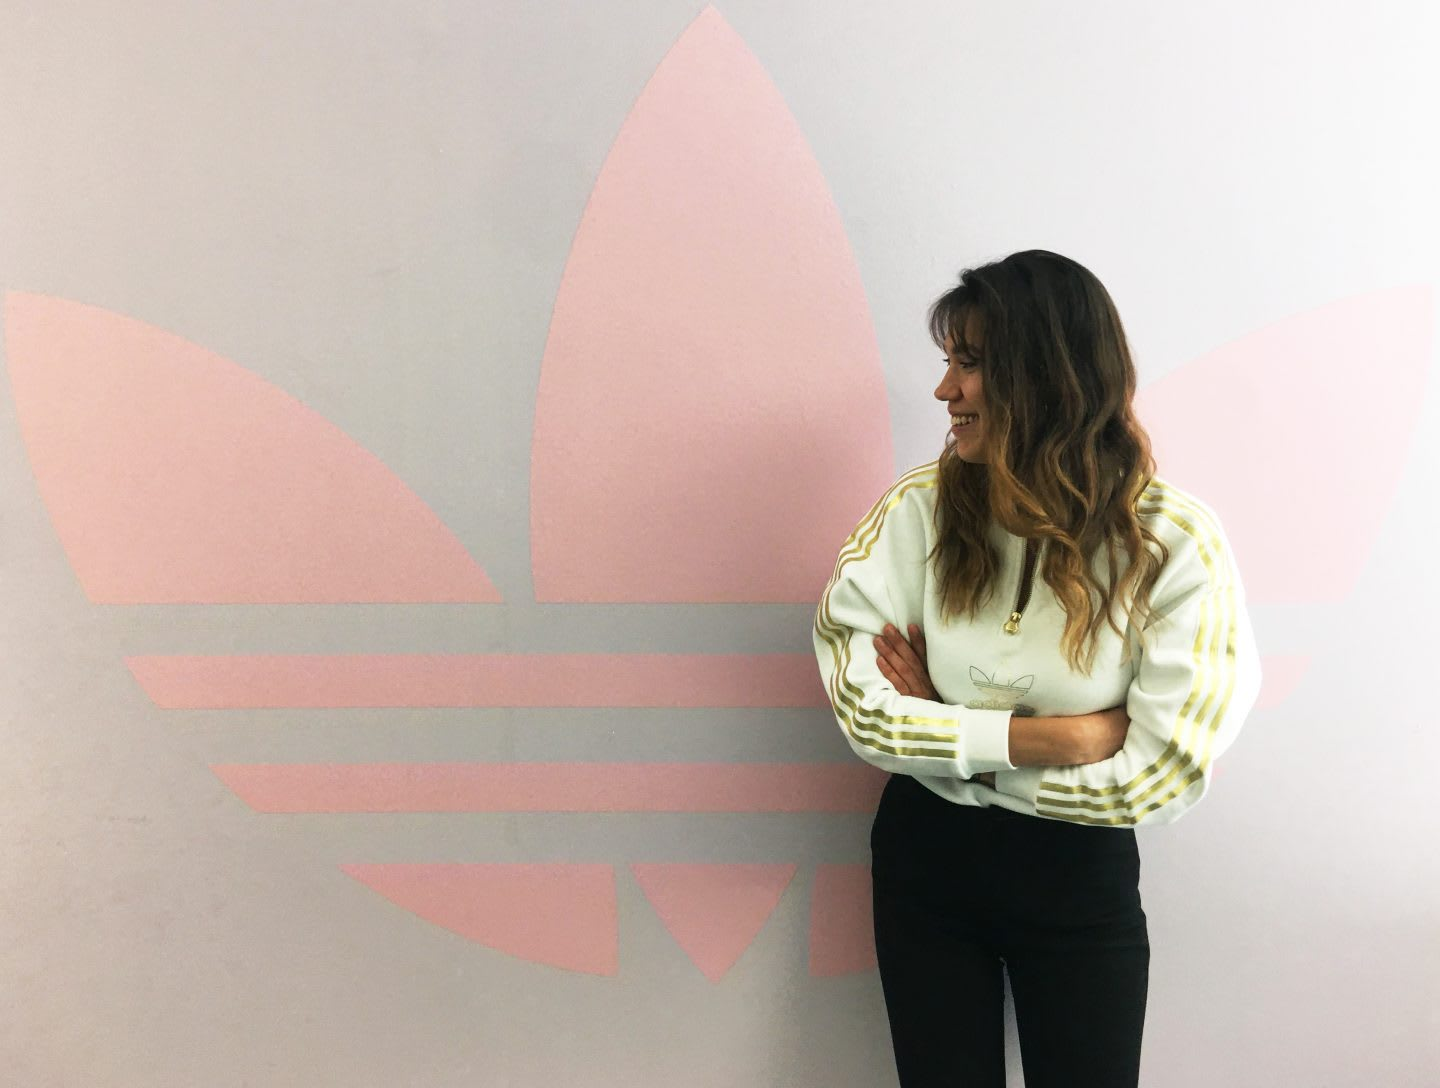 Girl with brown hair wearing cream adidas sweatshirt smiling and standing with arms crossed in front of pink adidas Originals Trefoil logo on the wall, İpek Ünlü, career, internship, adidas, virtual